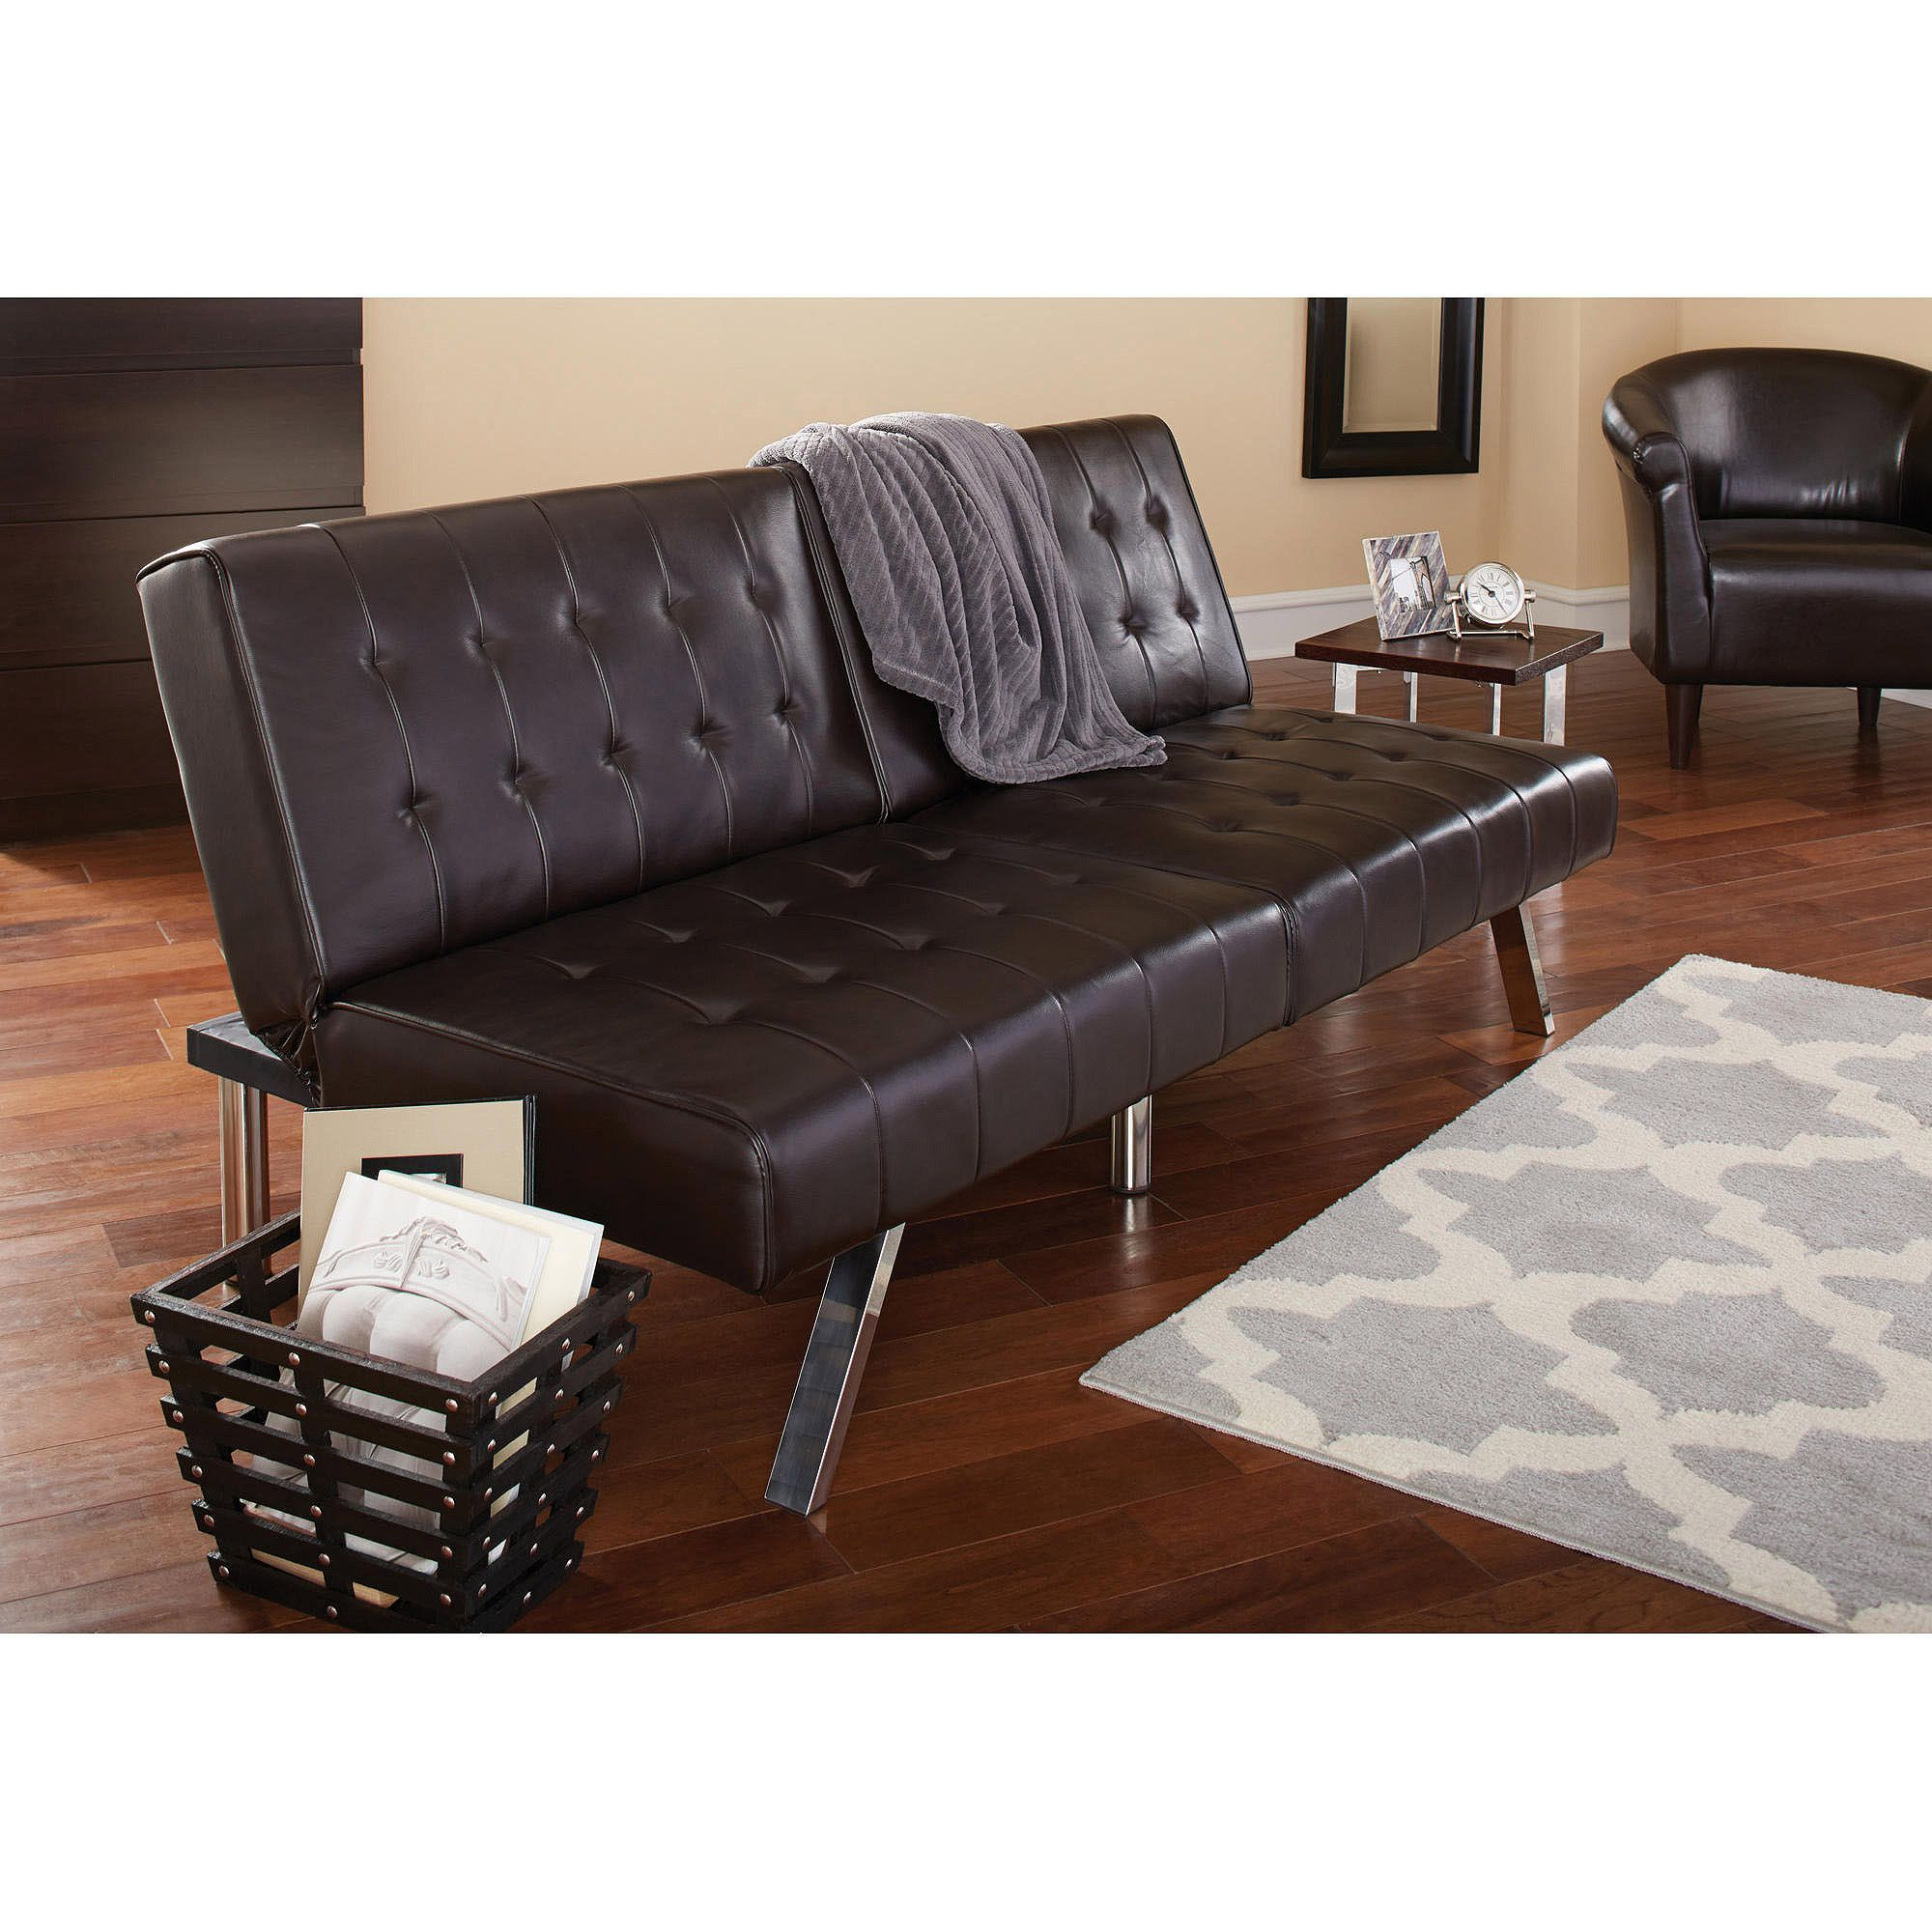 Search and Compare more Furniture Deals at http